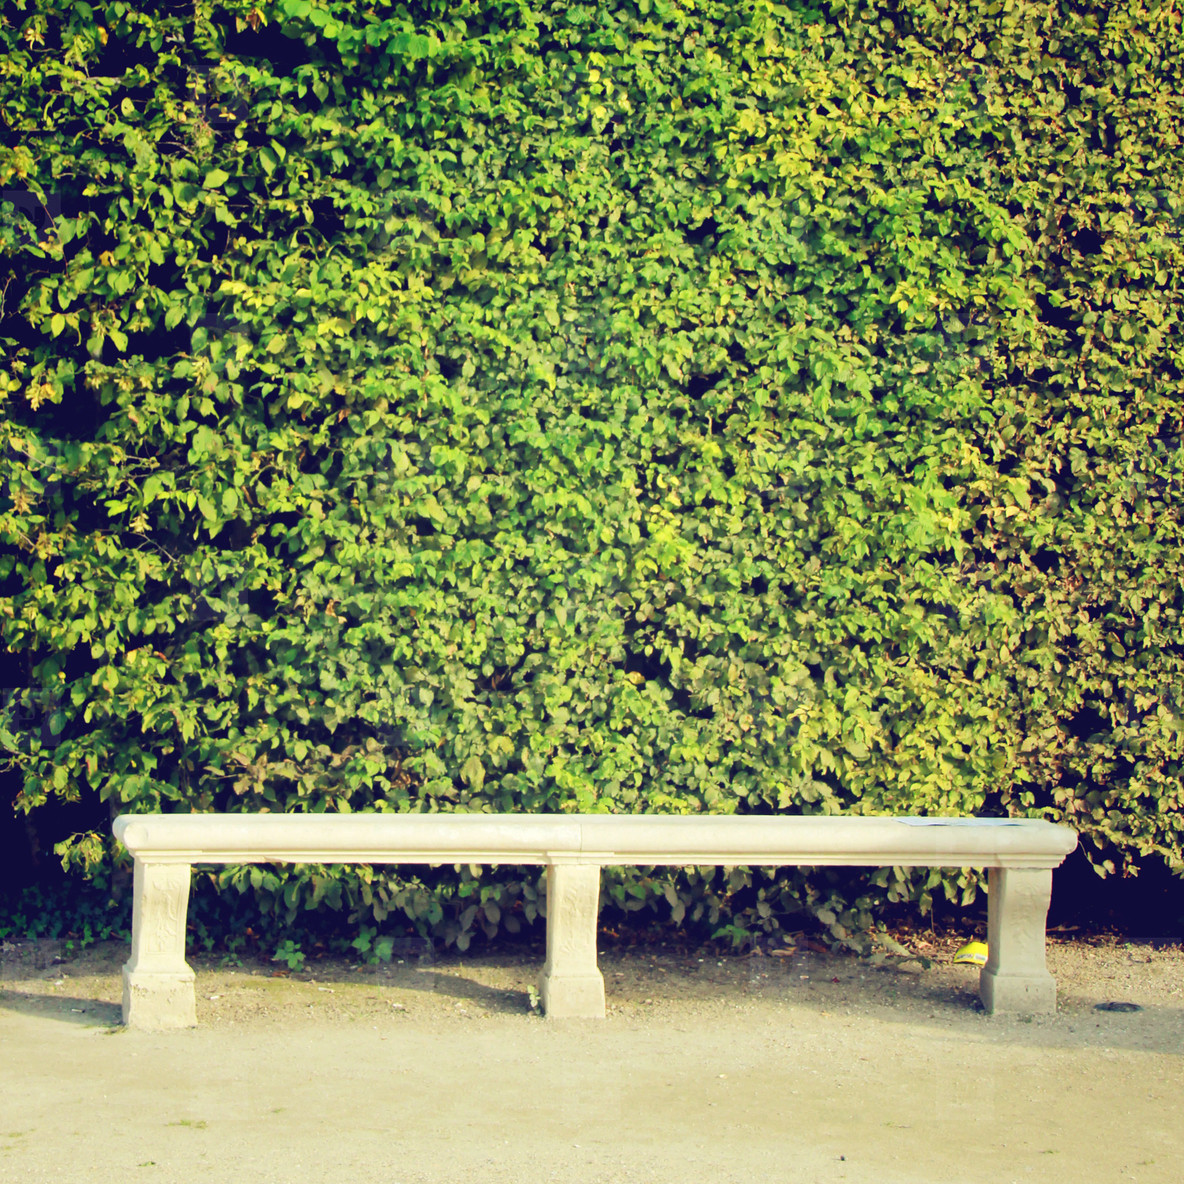 Stone bench and ivy plant wall